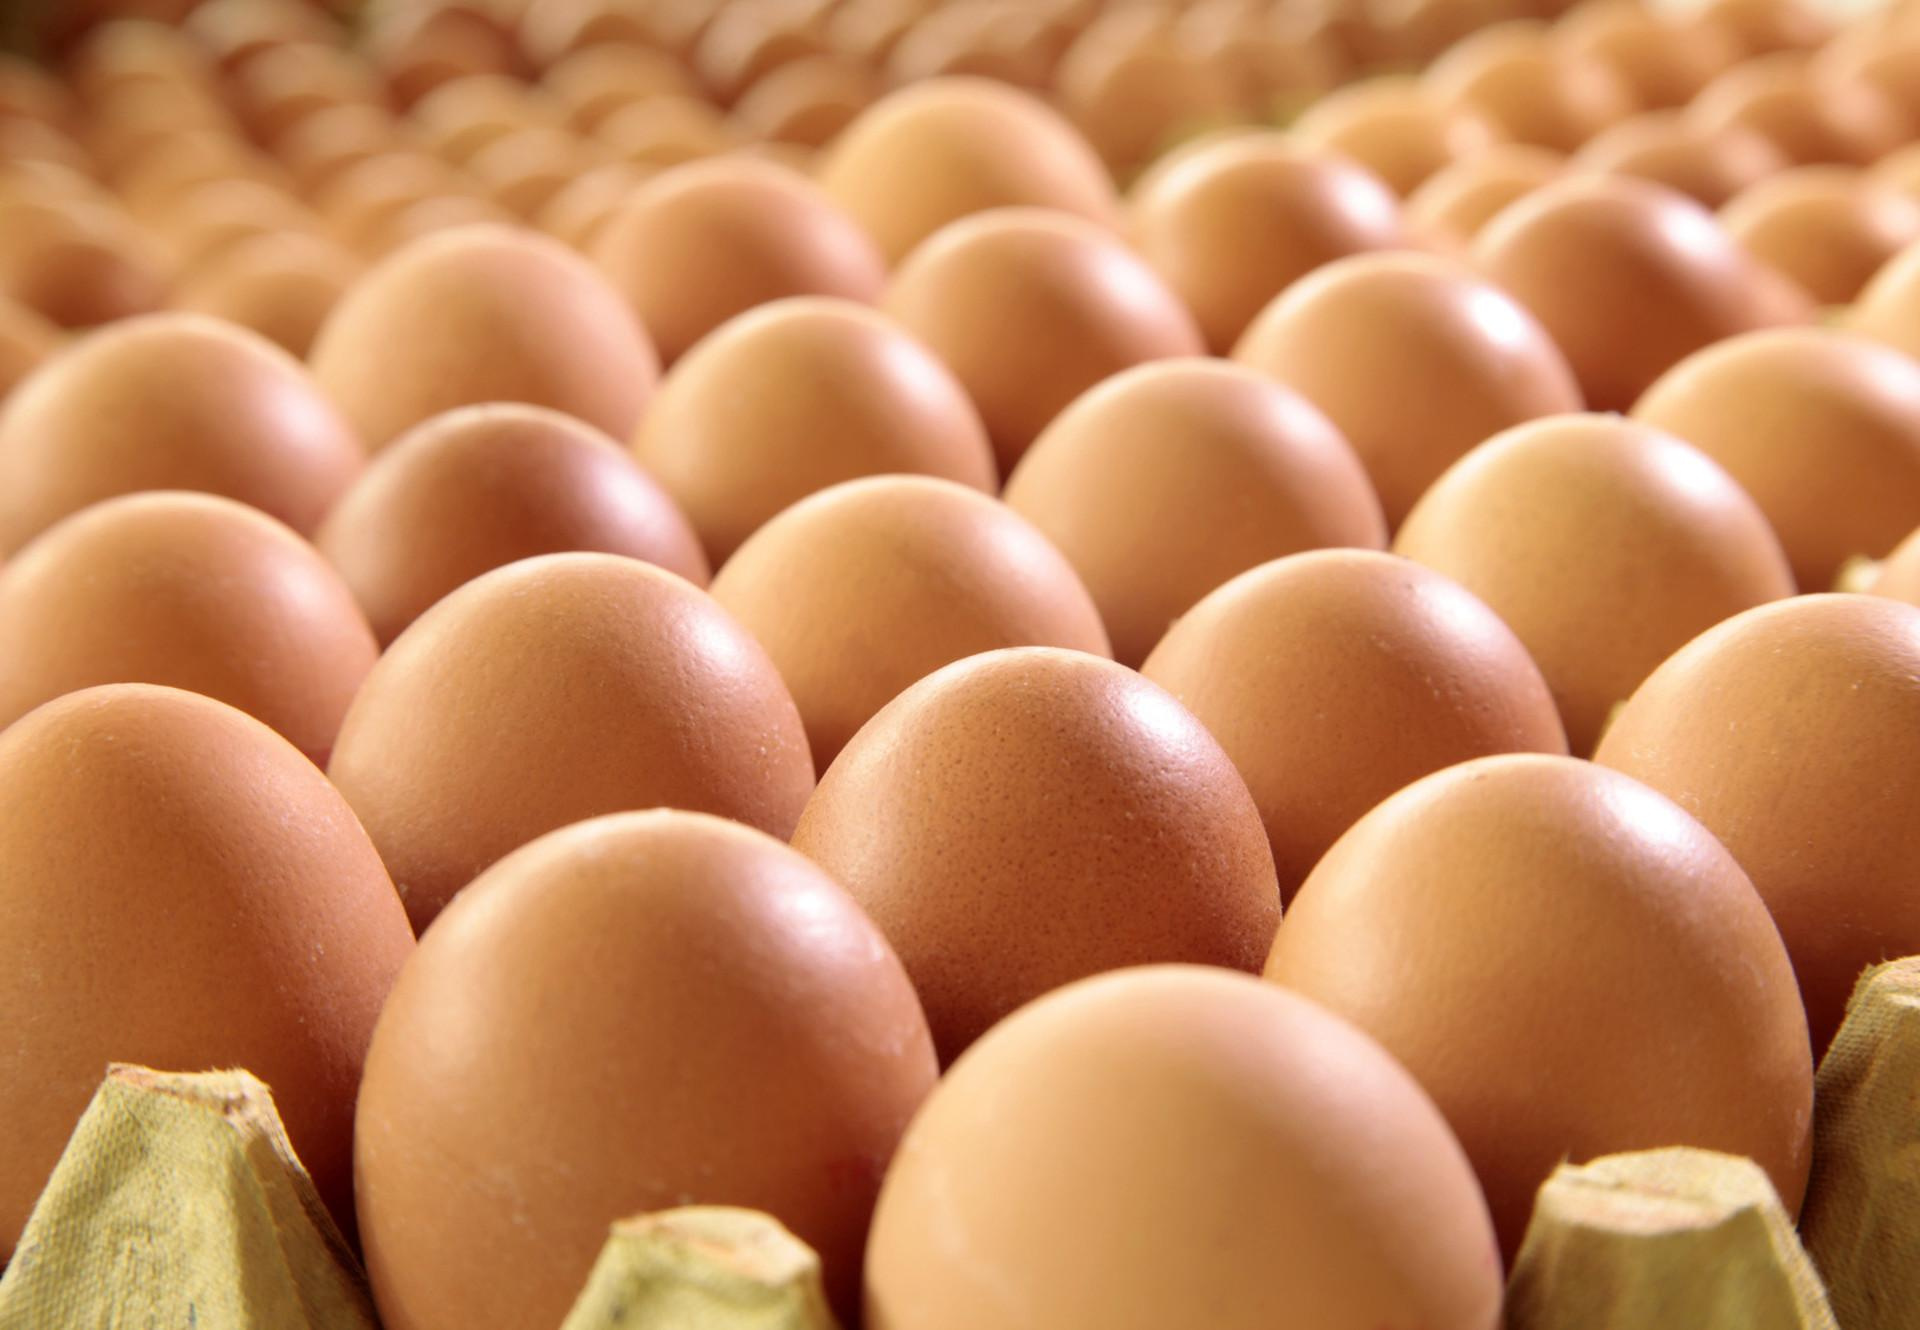 Hidden Cage Eggs in Processed Food - Farm Animals - Topics ...